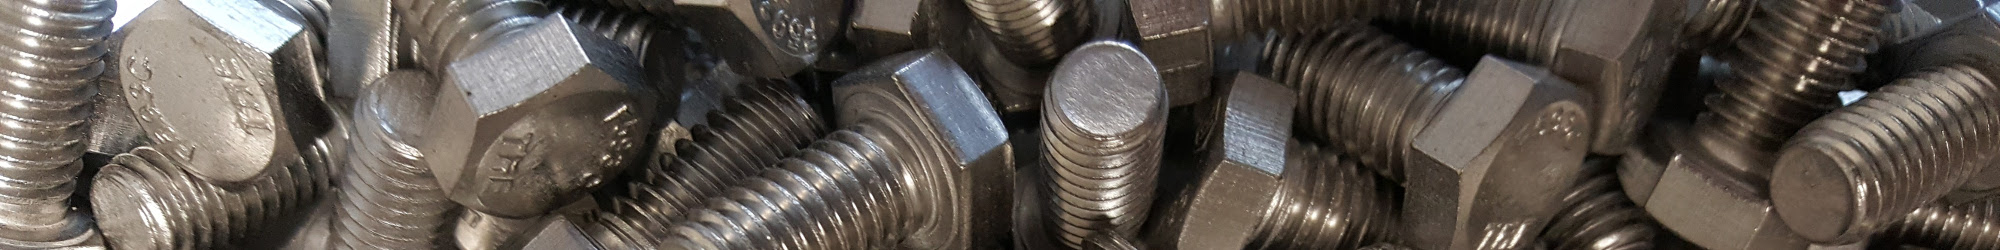 High Quality Bulk Fasteners In Stock And Shipped Across America